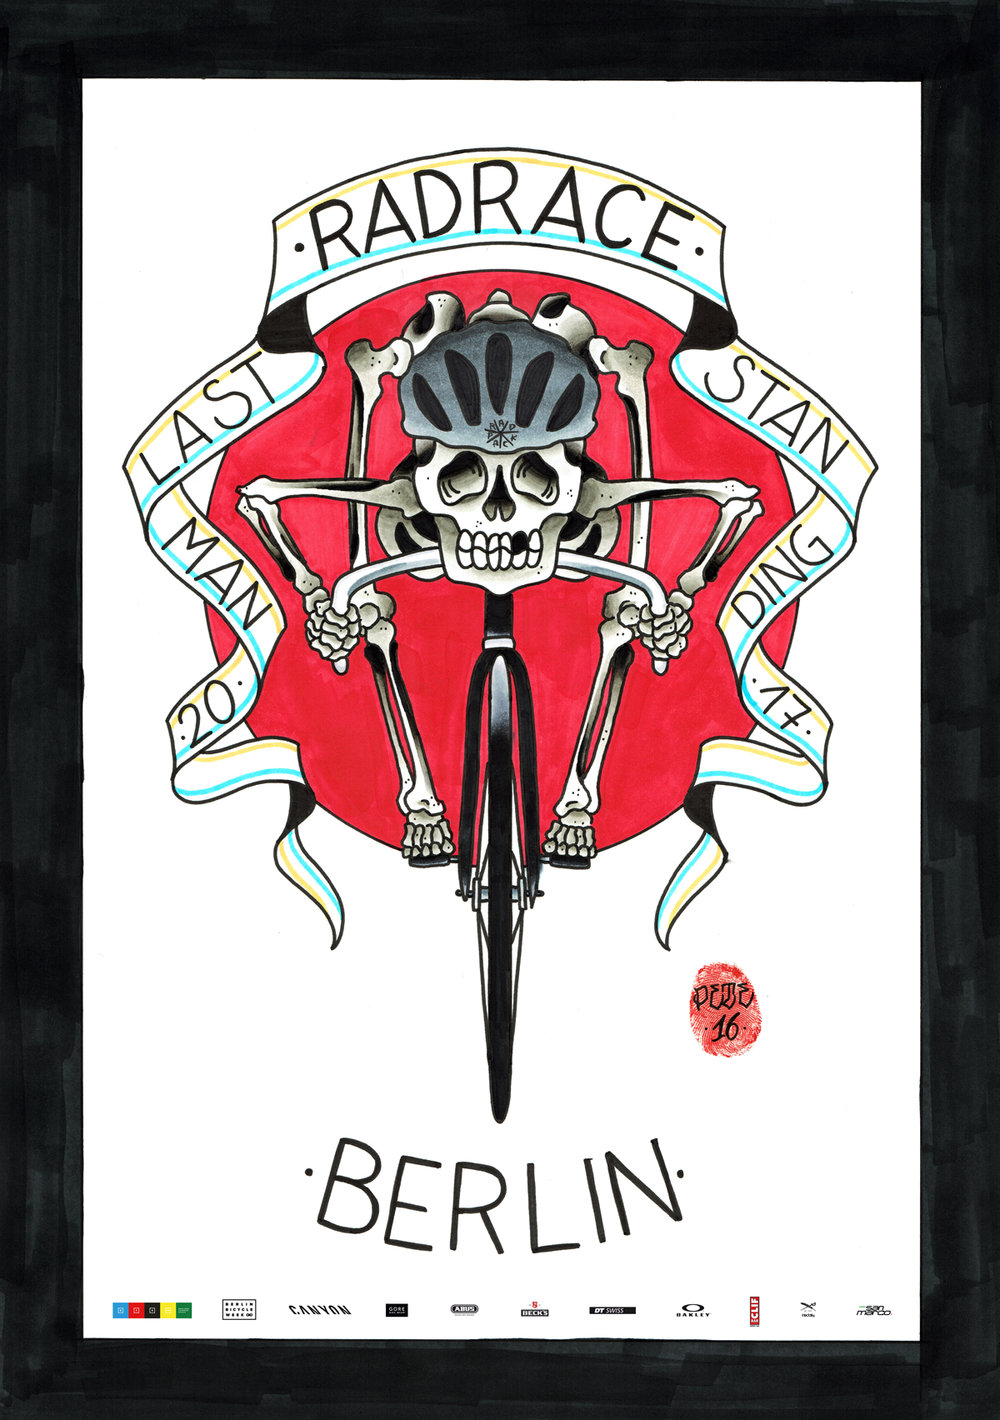 The official event poster // RAD RACE LAST MAN STANDING berliner fahrradschau 2017